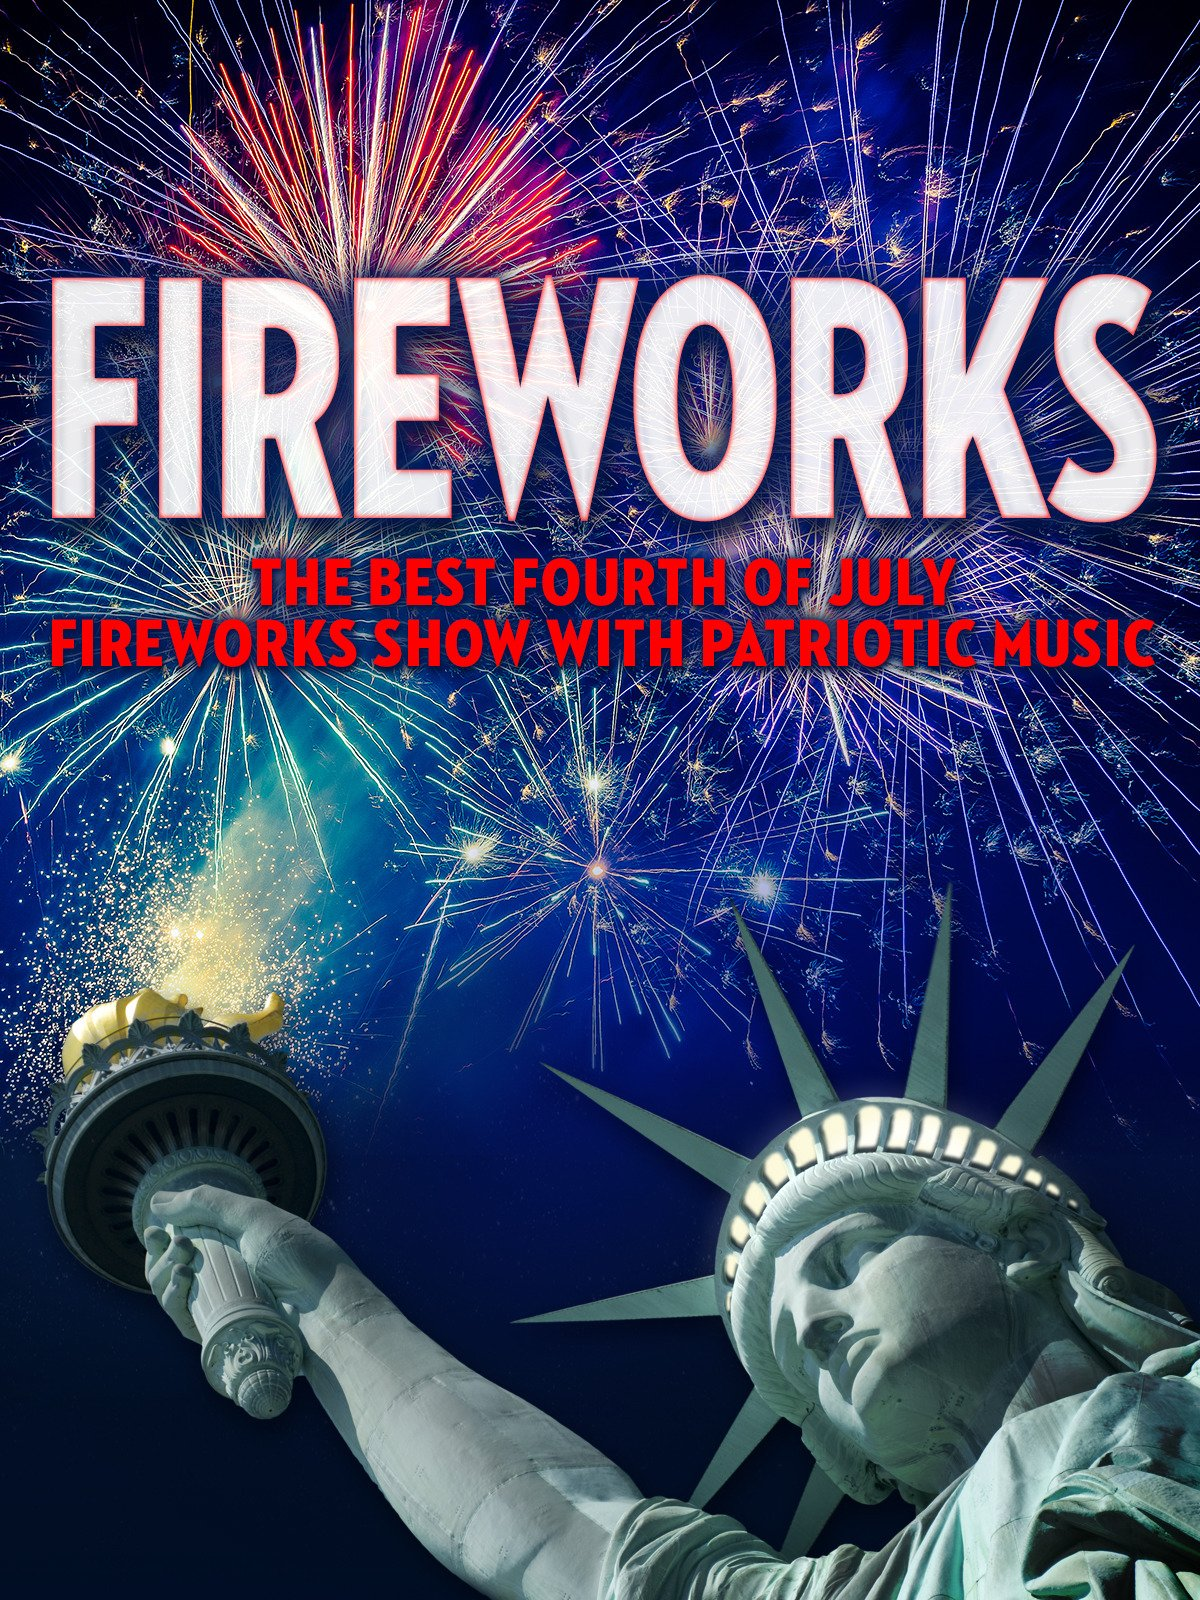 Fireworks: The Best Fourth of July Fireworks Show